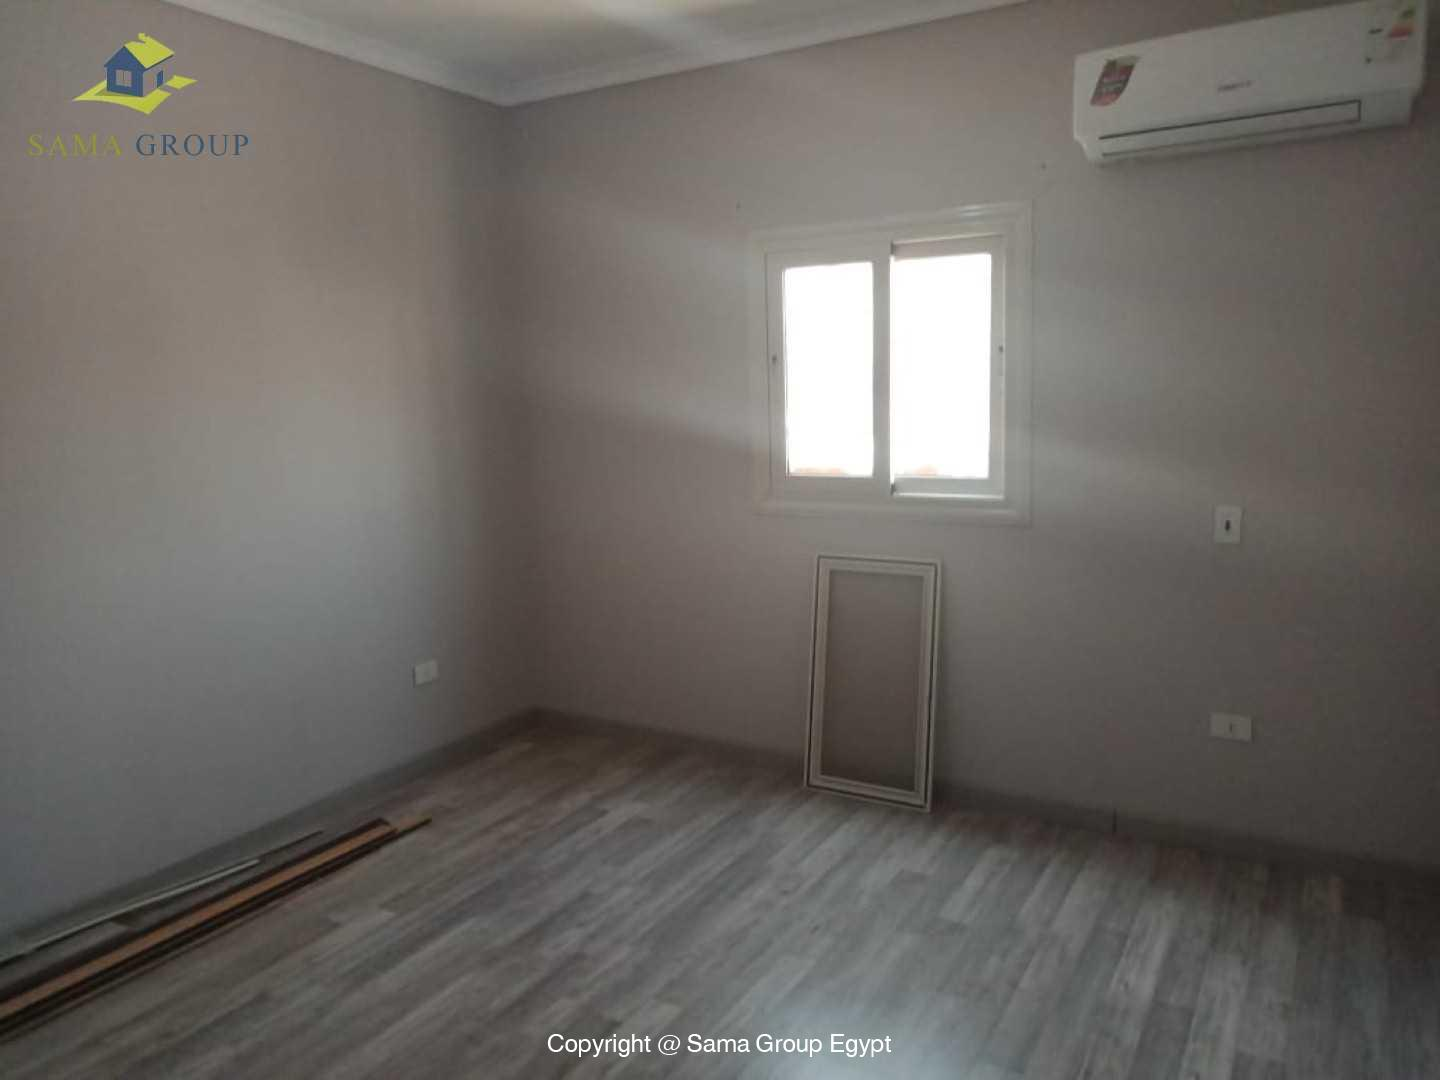 Penthouse For Rent In Maadi Sarayat,Semi furnished,Penthouse NO #14